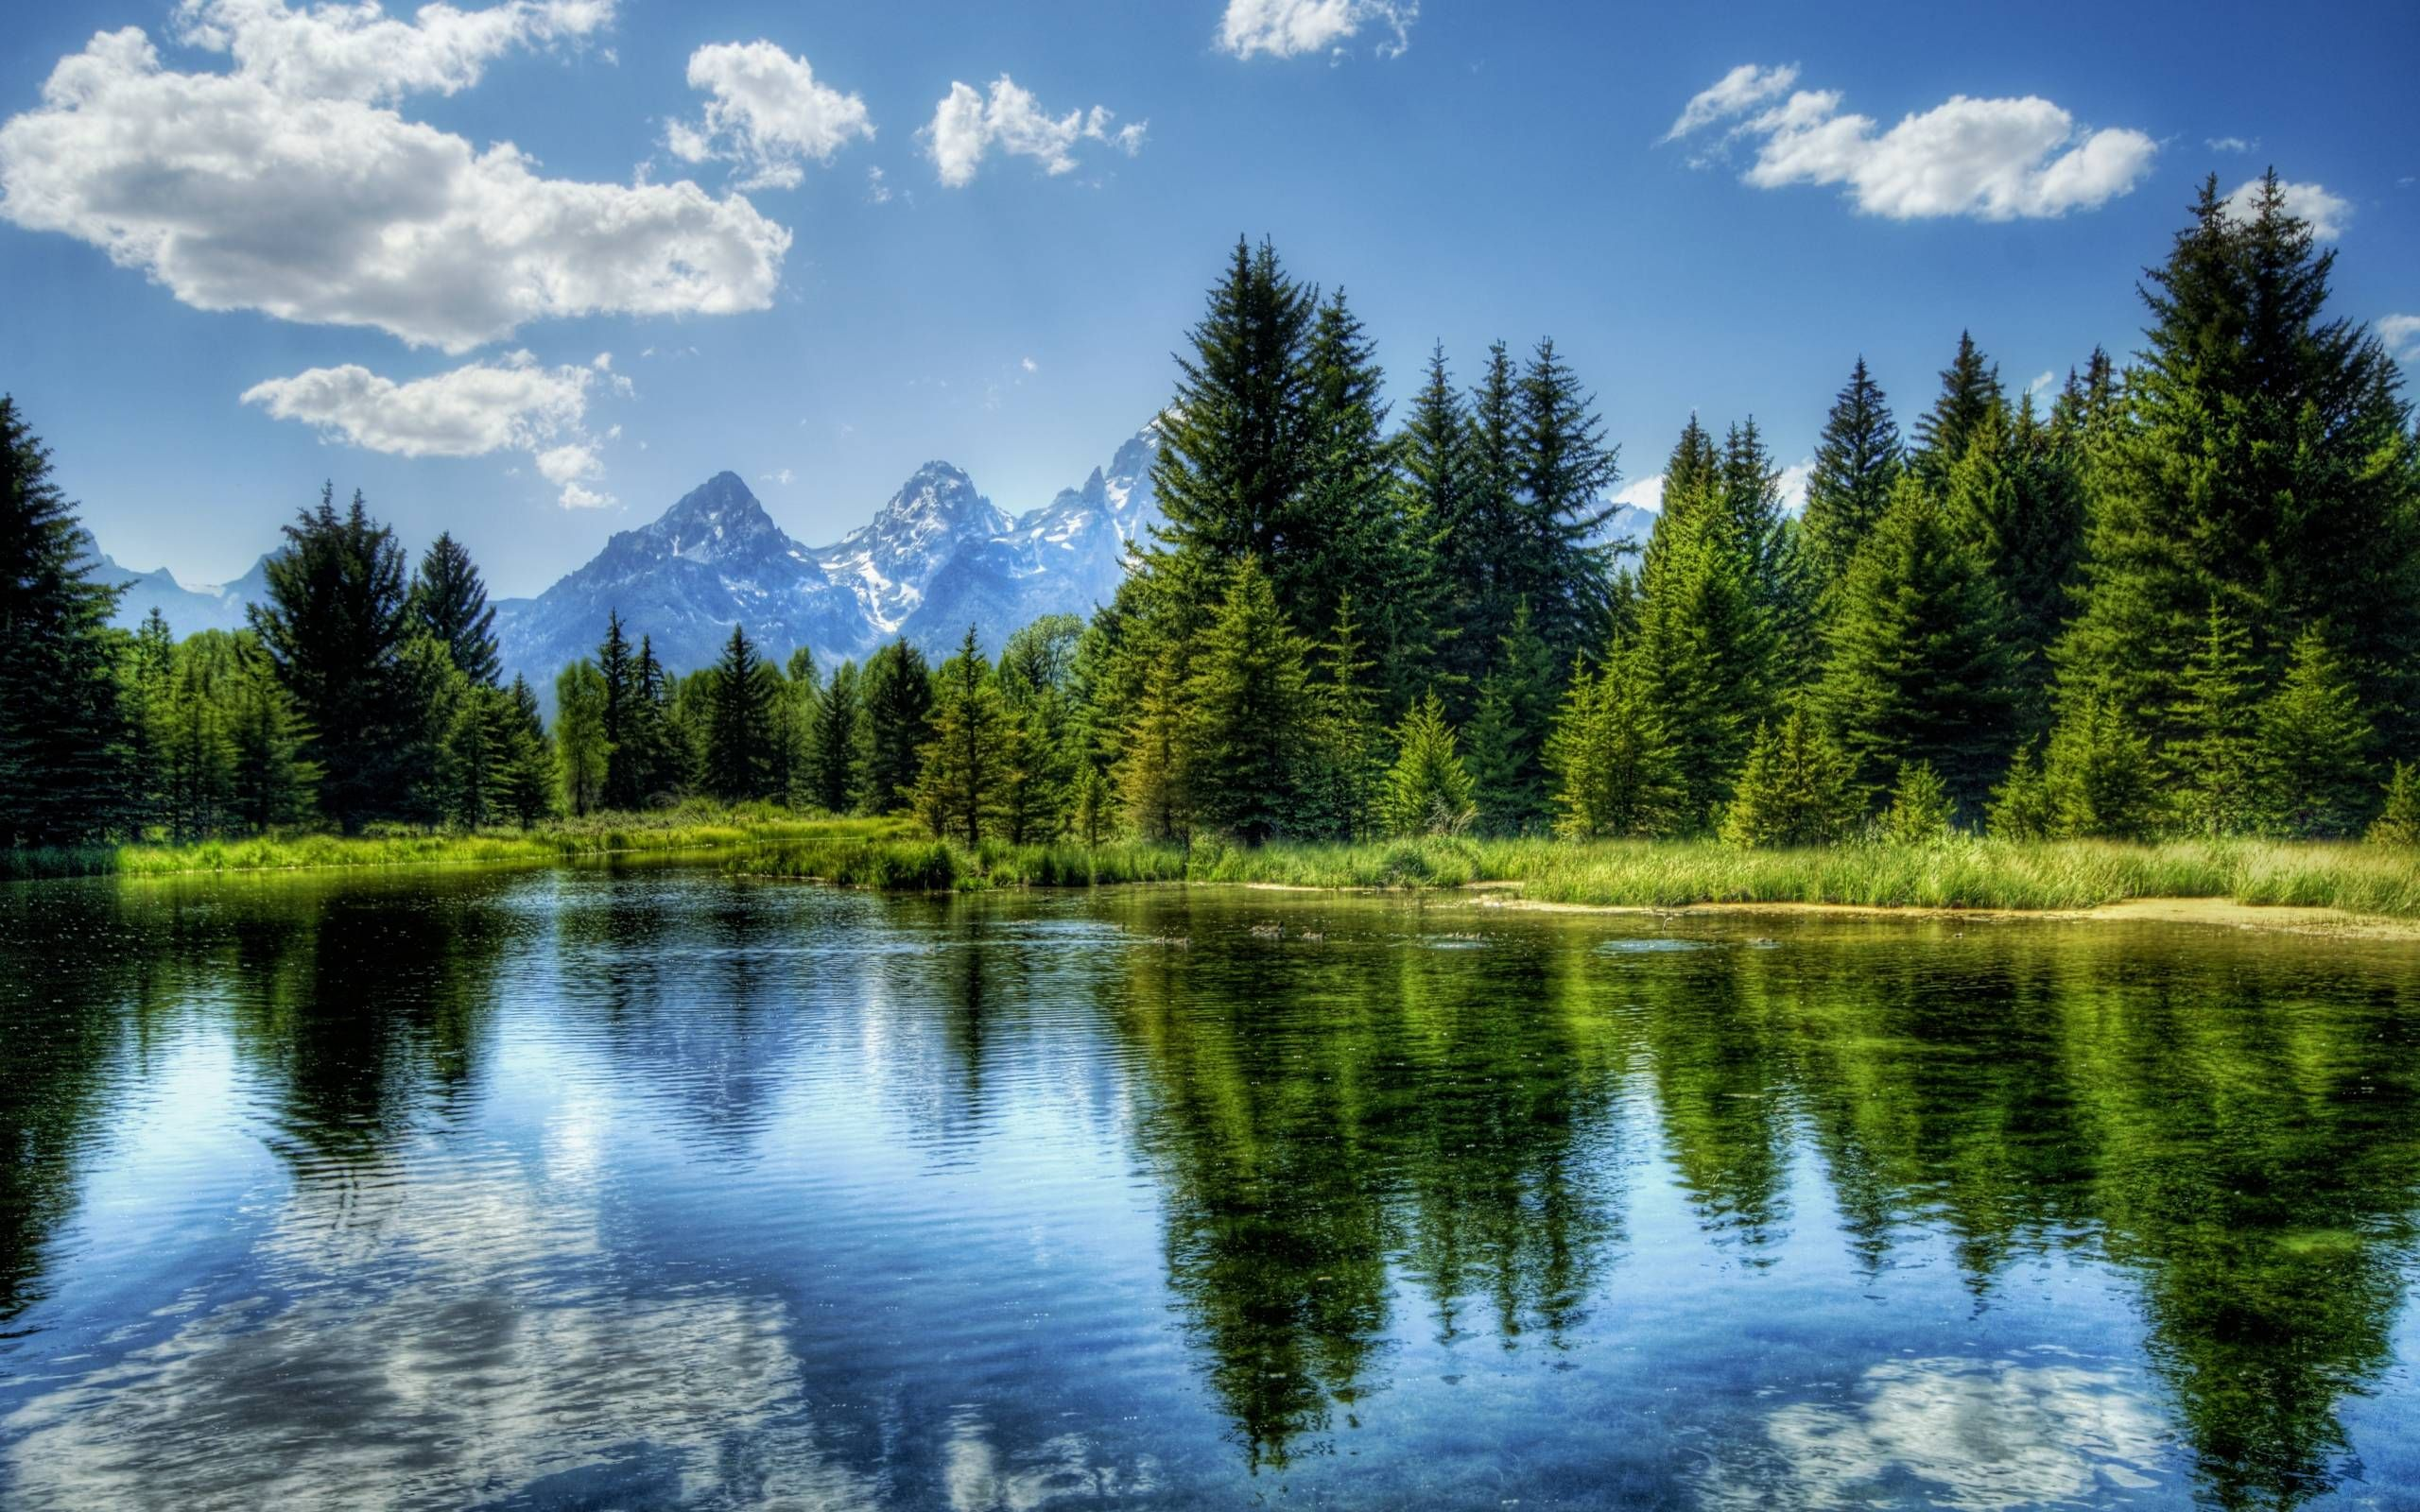 10 High Quality Nature Wallpaper With Images Landscape Wallpaper Beautiful Landscapes Forest Lake